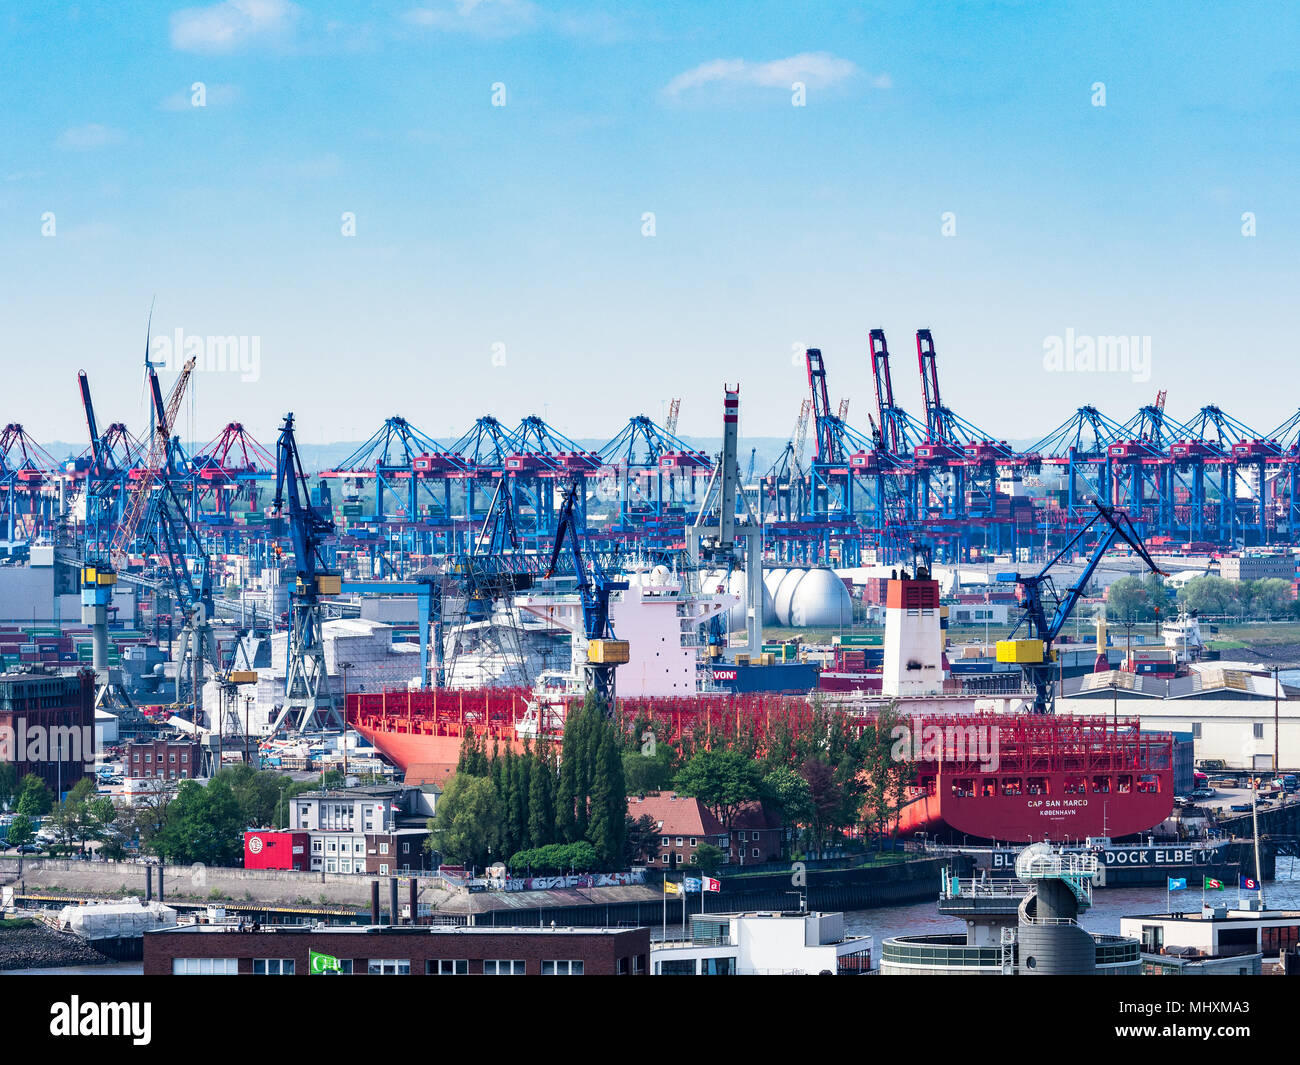 Hamburger Hafen, Hamburger Docks - der Hamburger Hafen ist der größte Hafen Deutschlands und drittgrößter Europas. World Trade International Trade, Global Trade Stockfoto